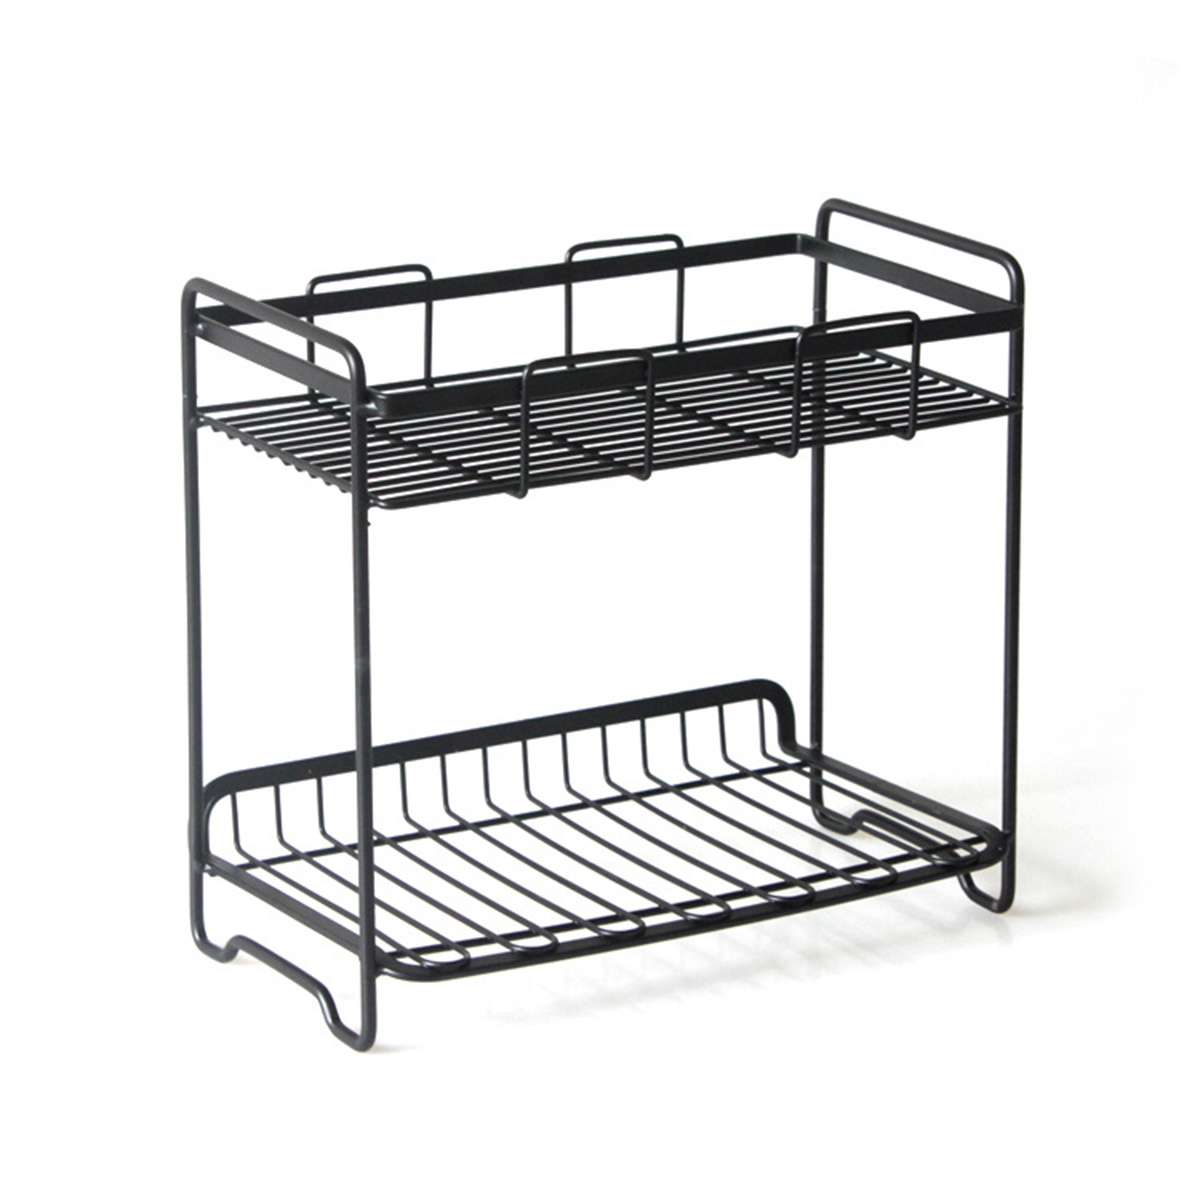 Storage Rack Metal Functional Multi-storey Wrought Iron Rack Wrought Iron Shelf Storage Shelf For Kitchen Bathroom Balcony Goods Of Every Description Are Available Bathroom Hardware